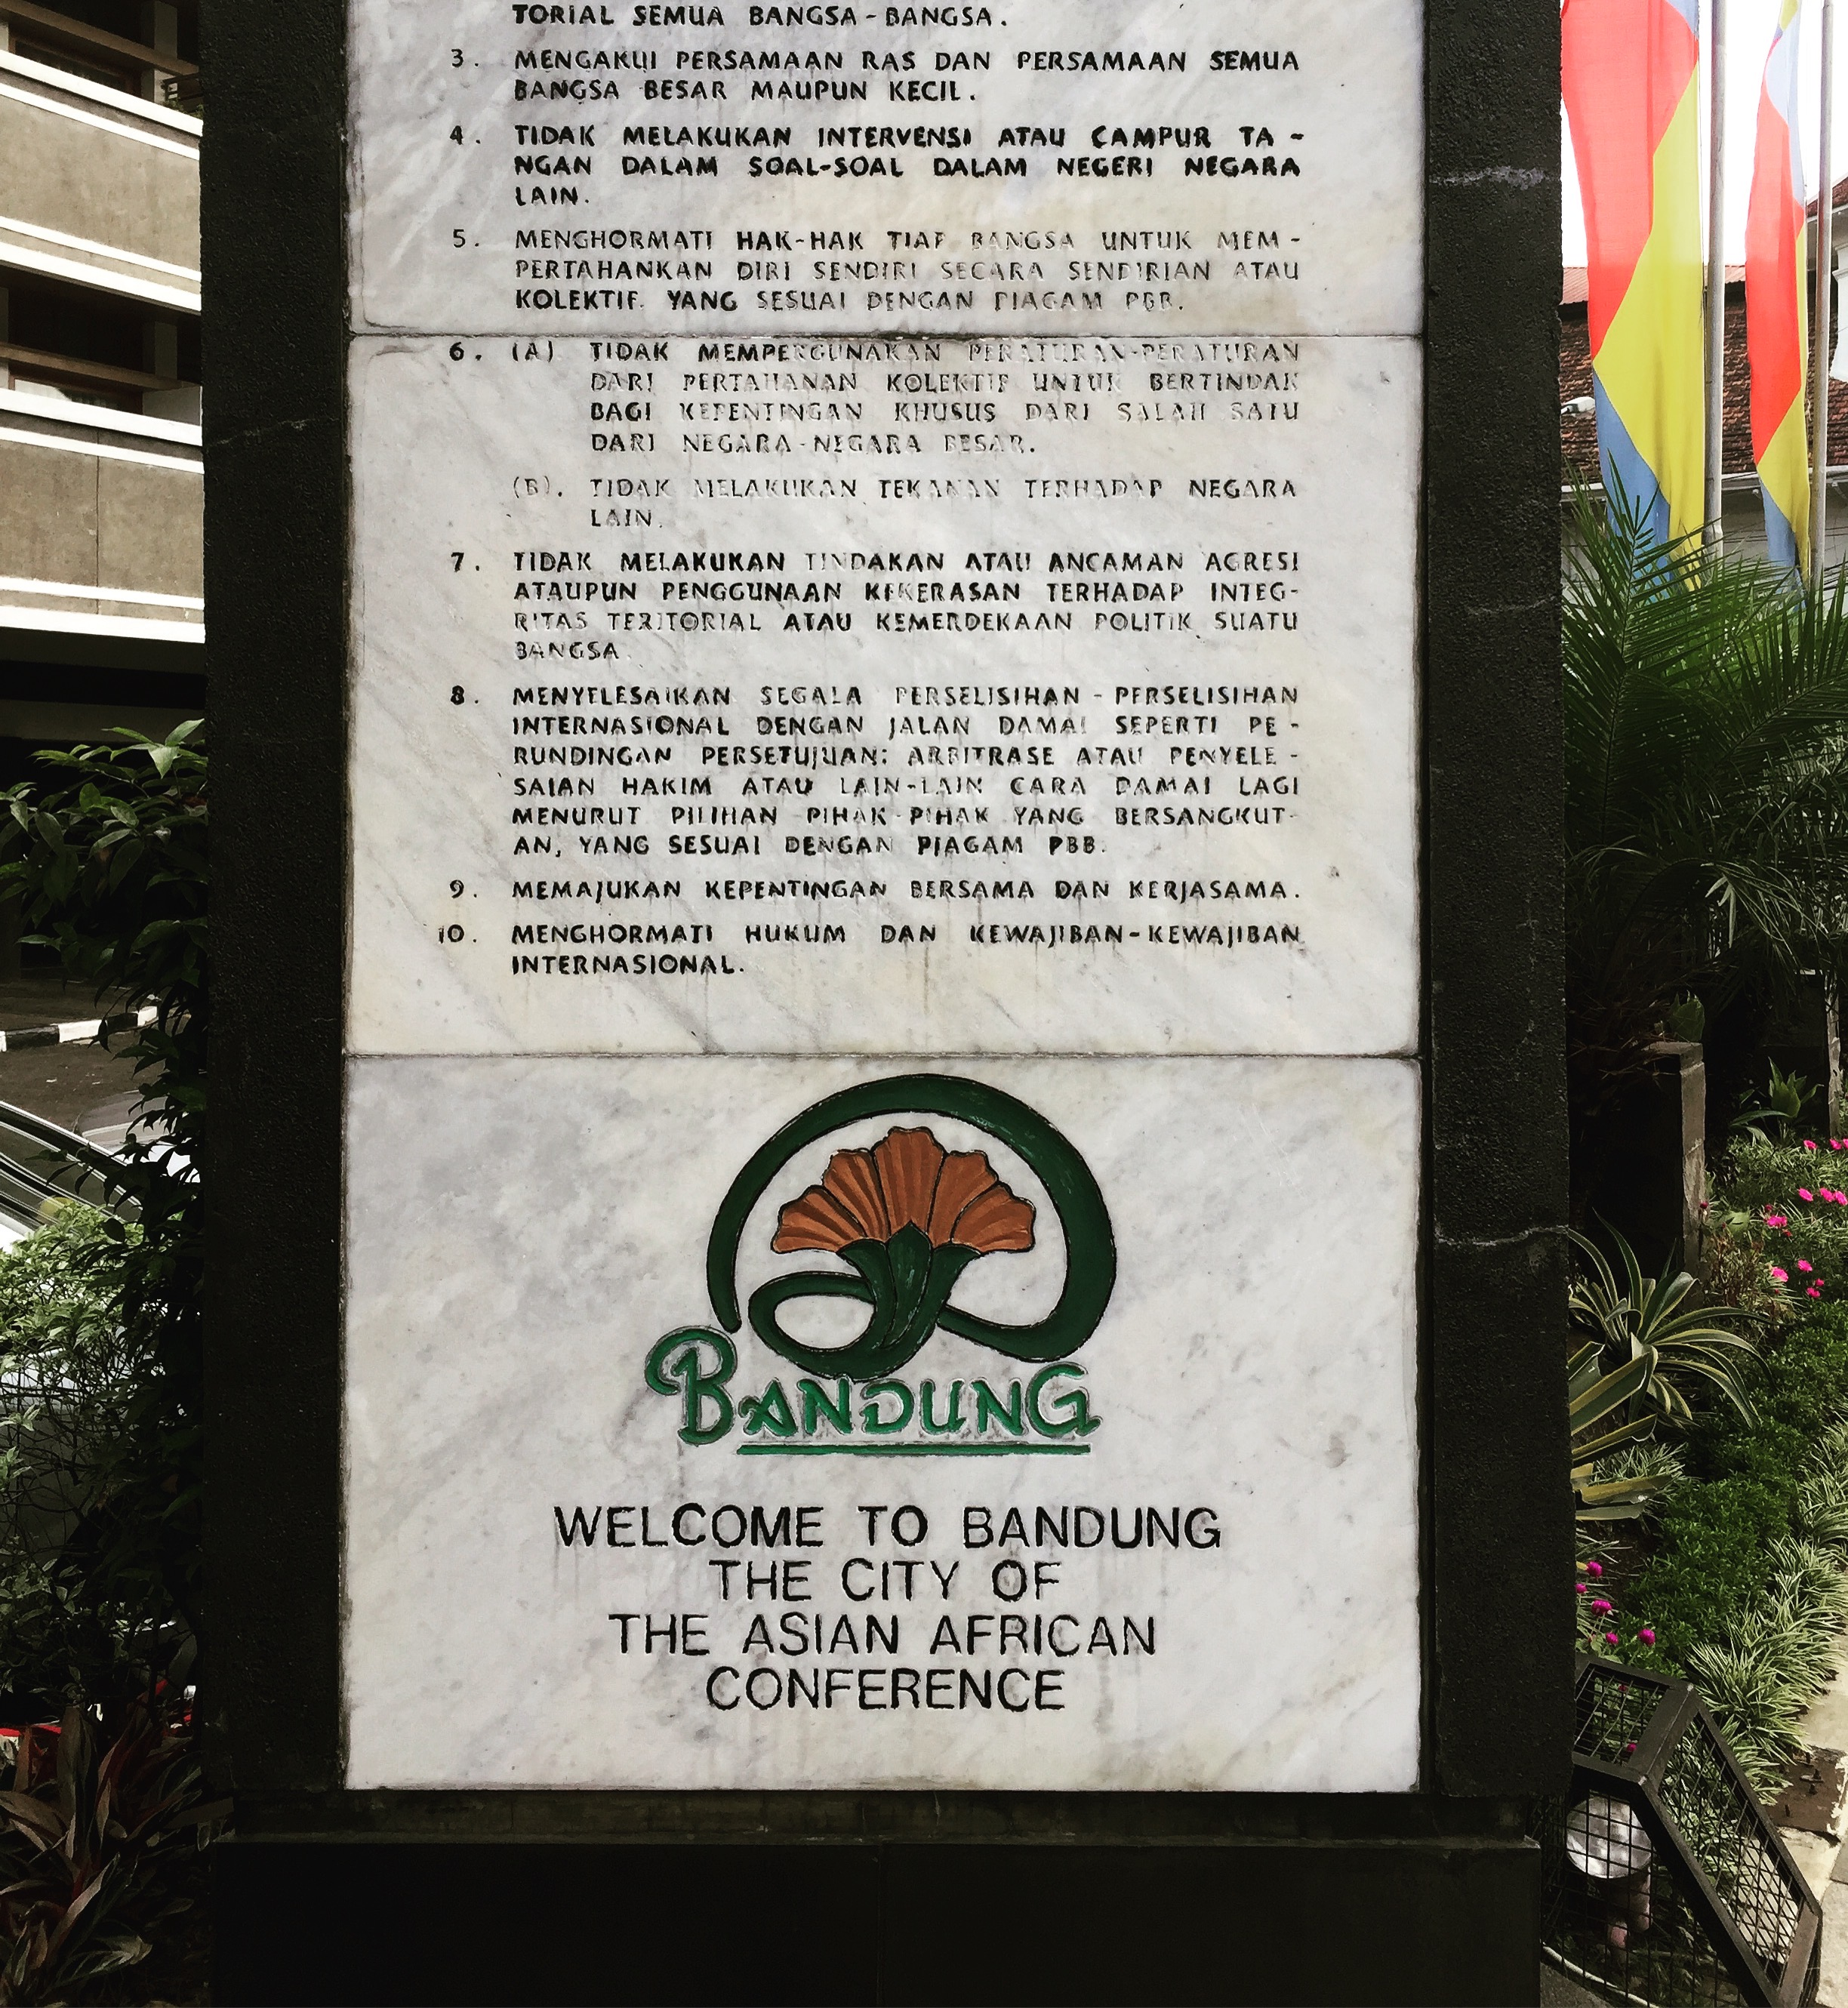 The Bandung Declaration on a plaque along the street between the conference venue and hotel